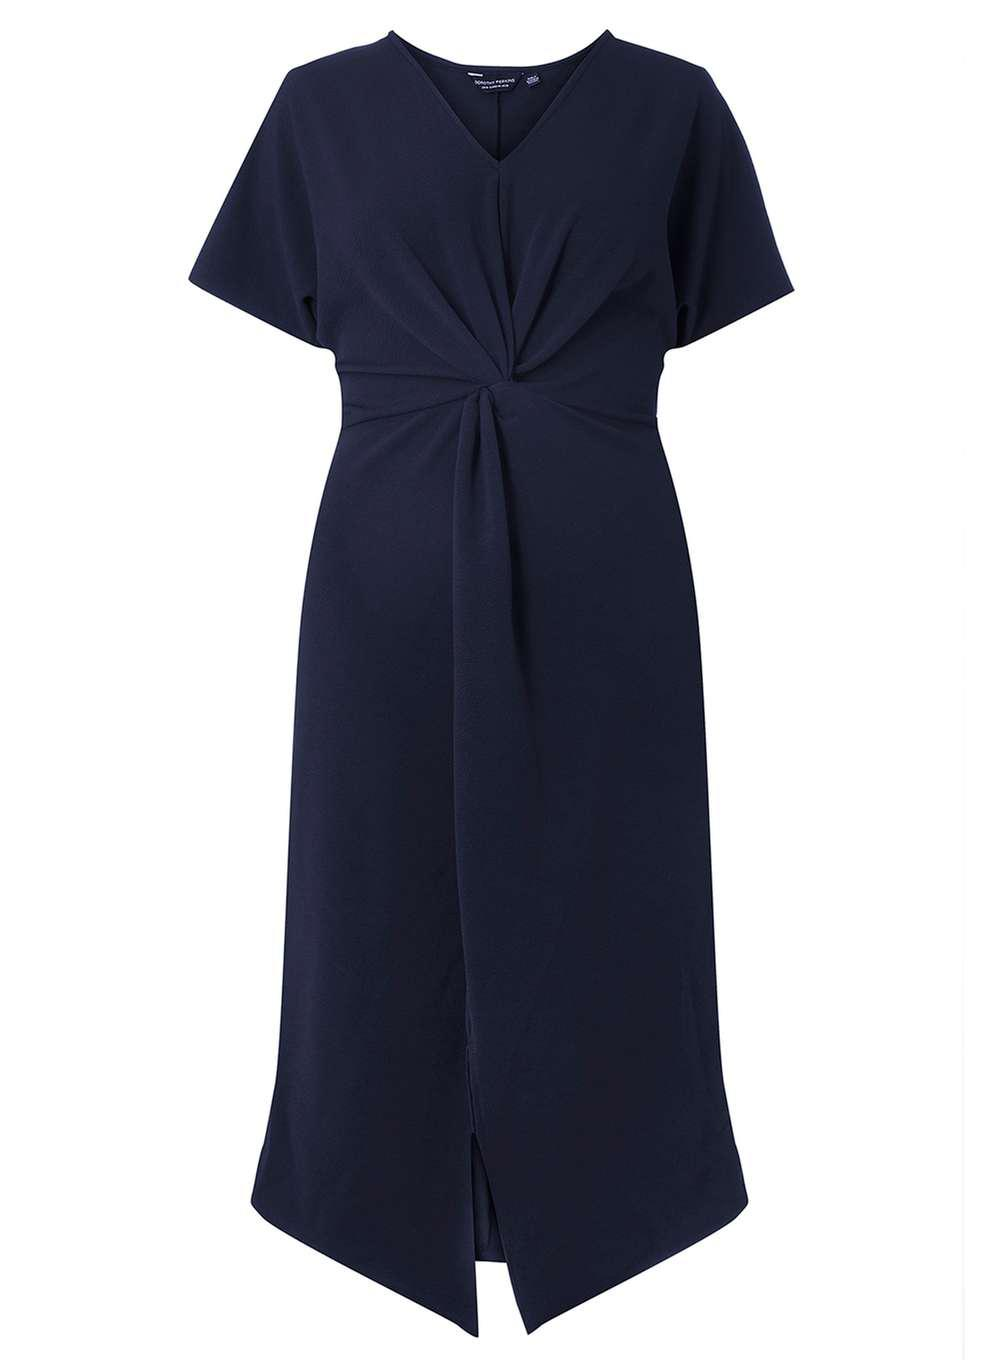 Dorothy Perkins Womens **DP Curve Navy Knot Front Shift Dress- Original Online Outlet 2018 TKm6iN5W